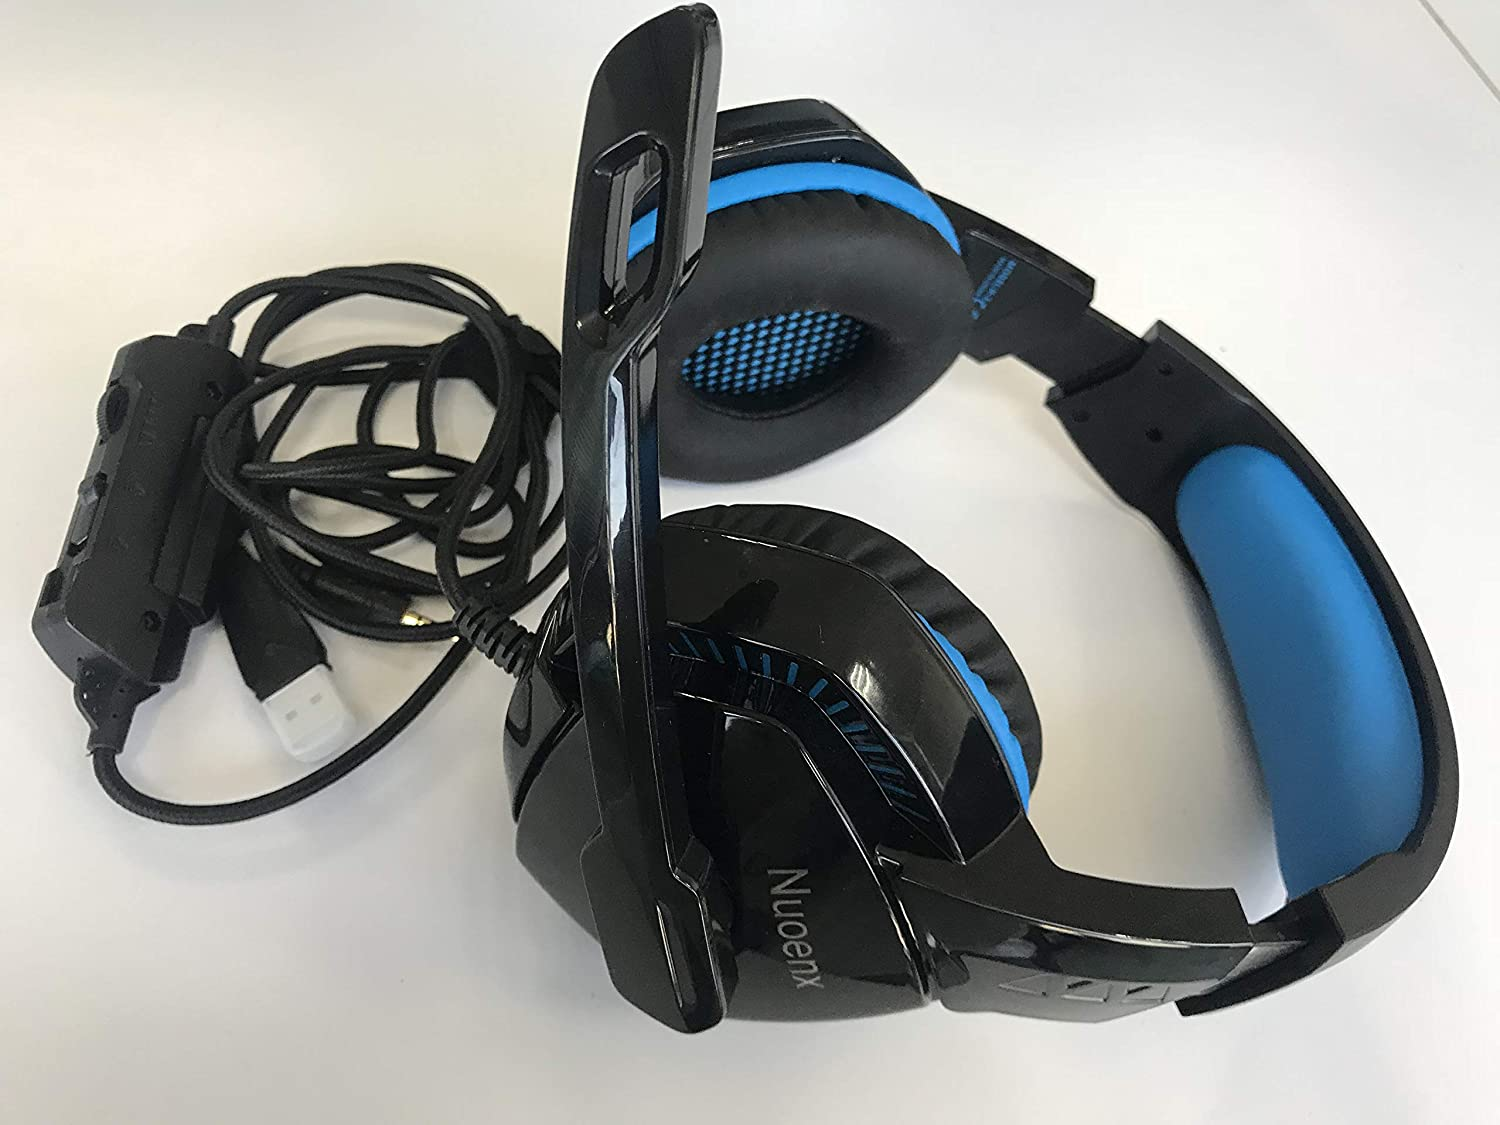 Nuoenx On Ear Headphones with Mic Lightweight Portable Fold-Flat Stereo Bass Headphones with 1.5M Tangle Free Cord and Microphone-Black /& Blue